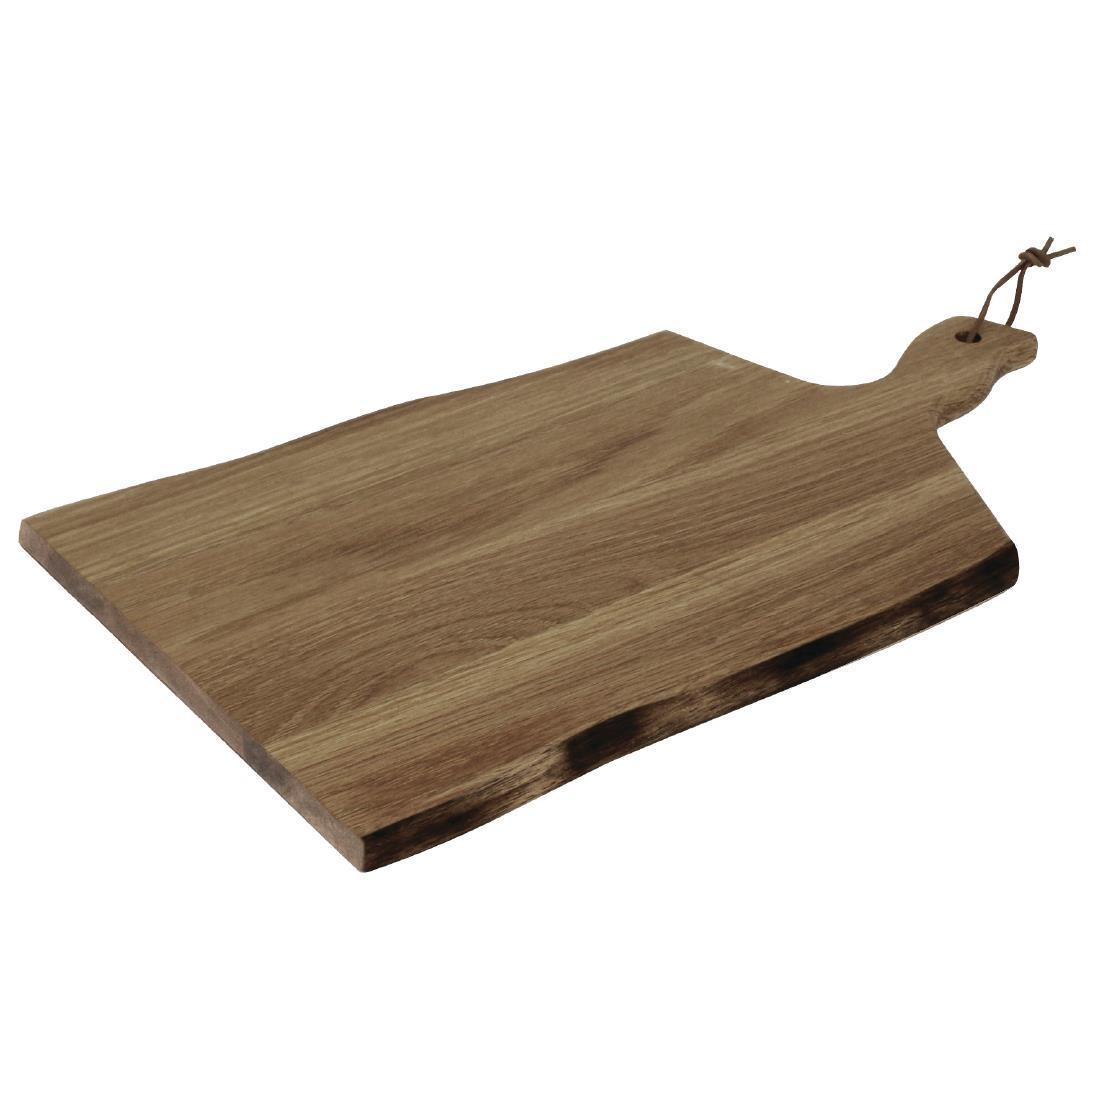 Olympia Acacia Wood Wavy Handled Wooden Board Large 355mm